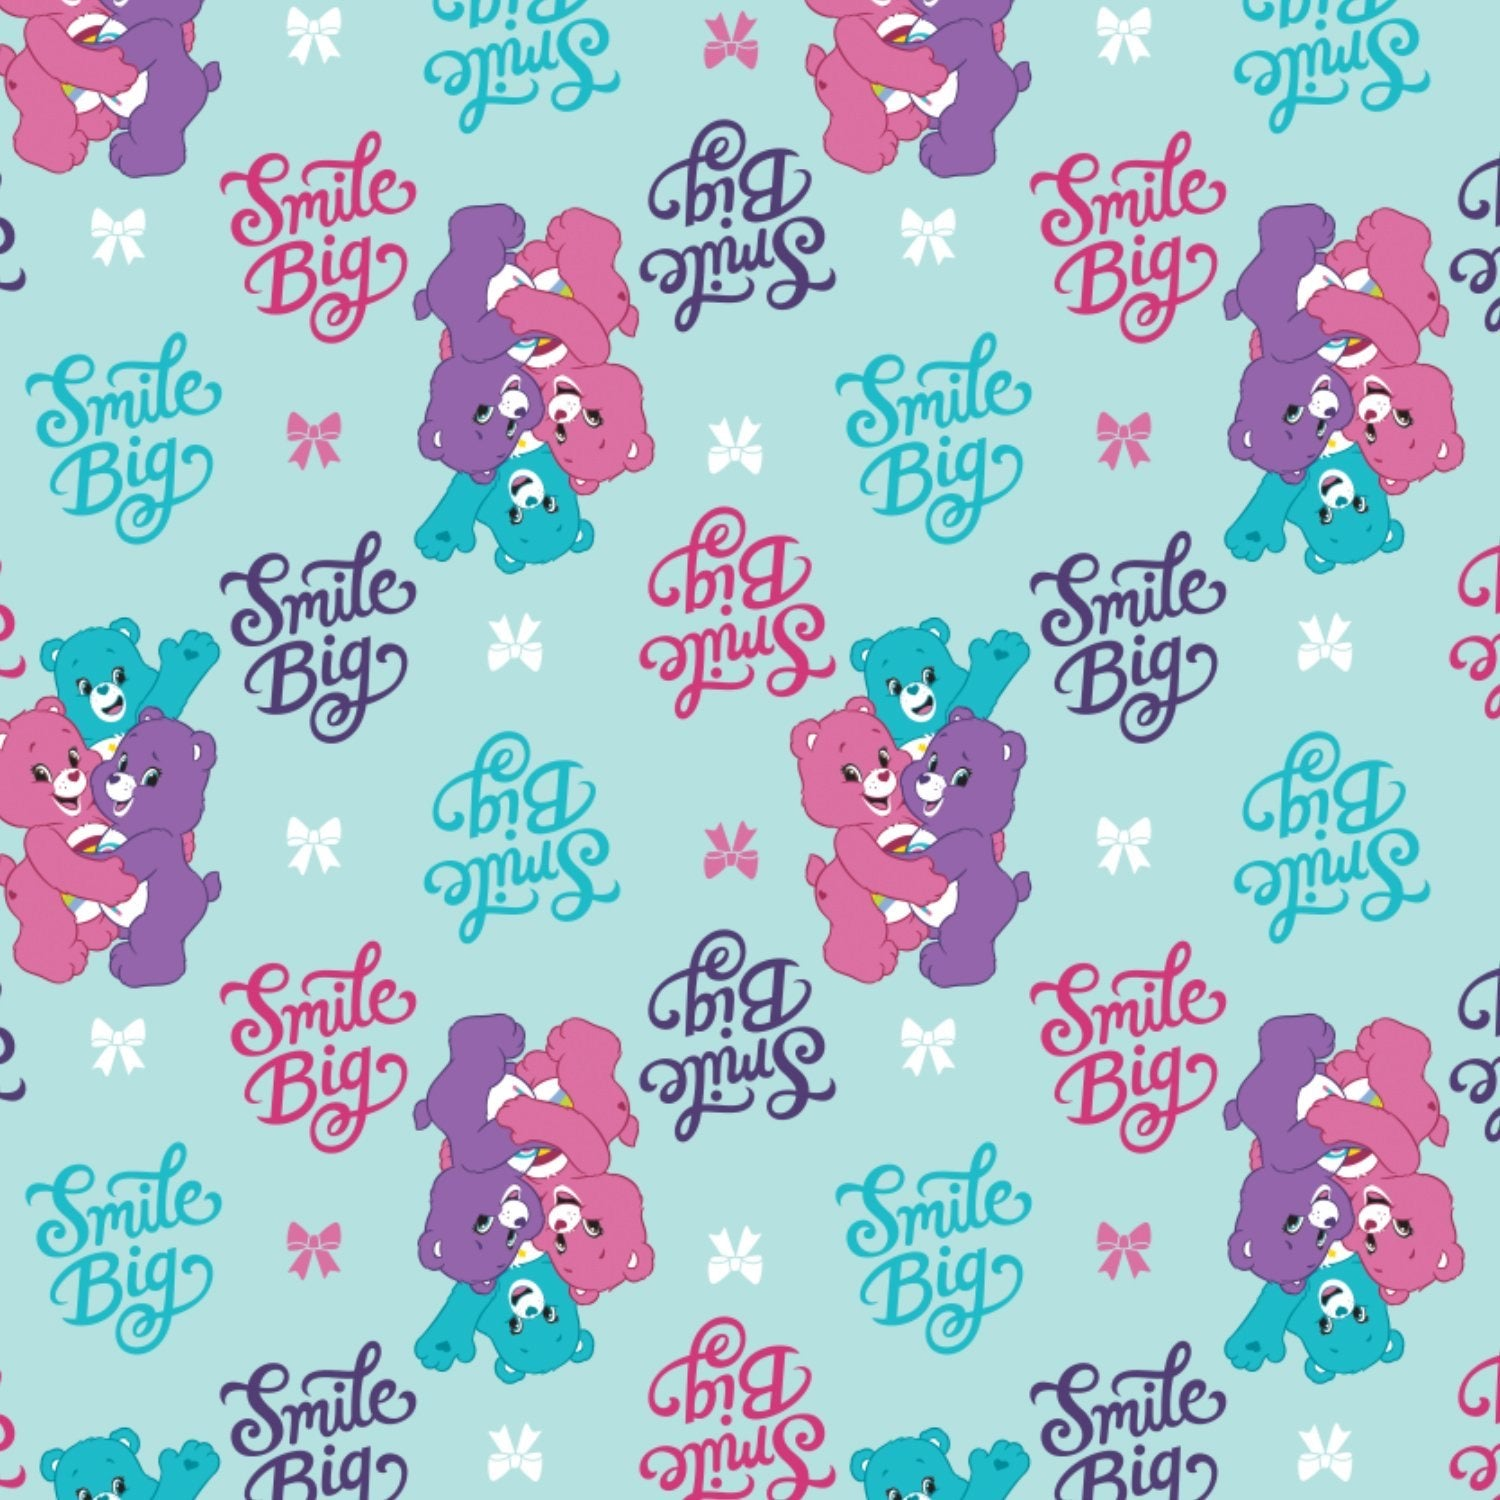 LICENSED COTTON - Care Bears Sparkle and Shine - Smiles - Quilting weight Fabric - (1/2 yard)